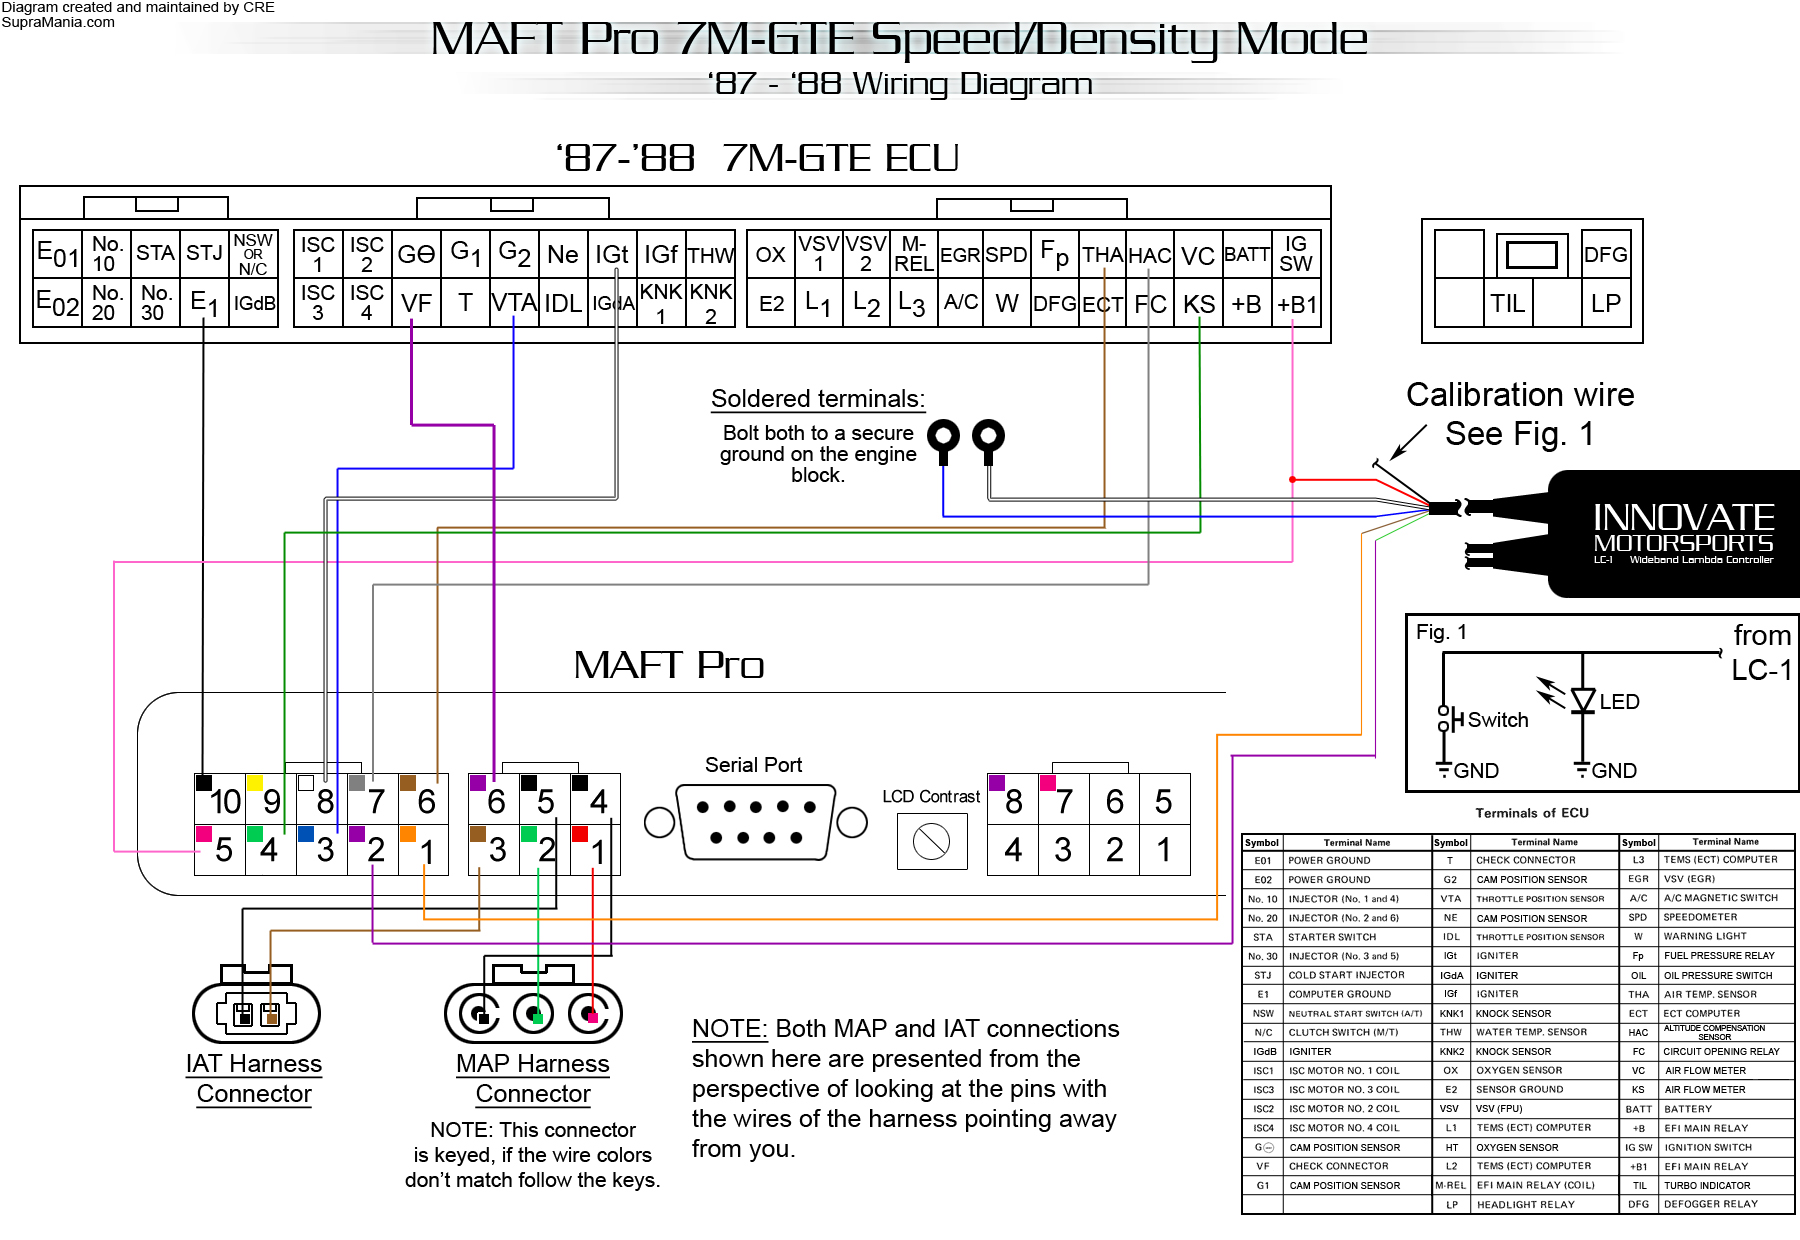 maft pro 7m gte sd 87 88 jpg rh fadingworld com map ecu 3 wiring diagram map ecu 2 wiring diagram